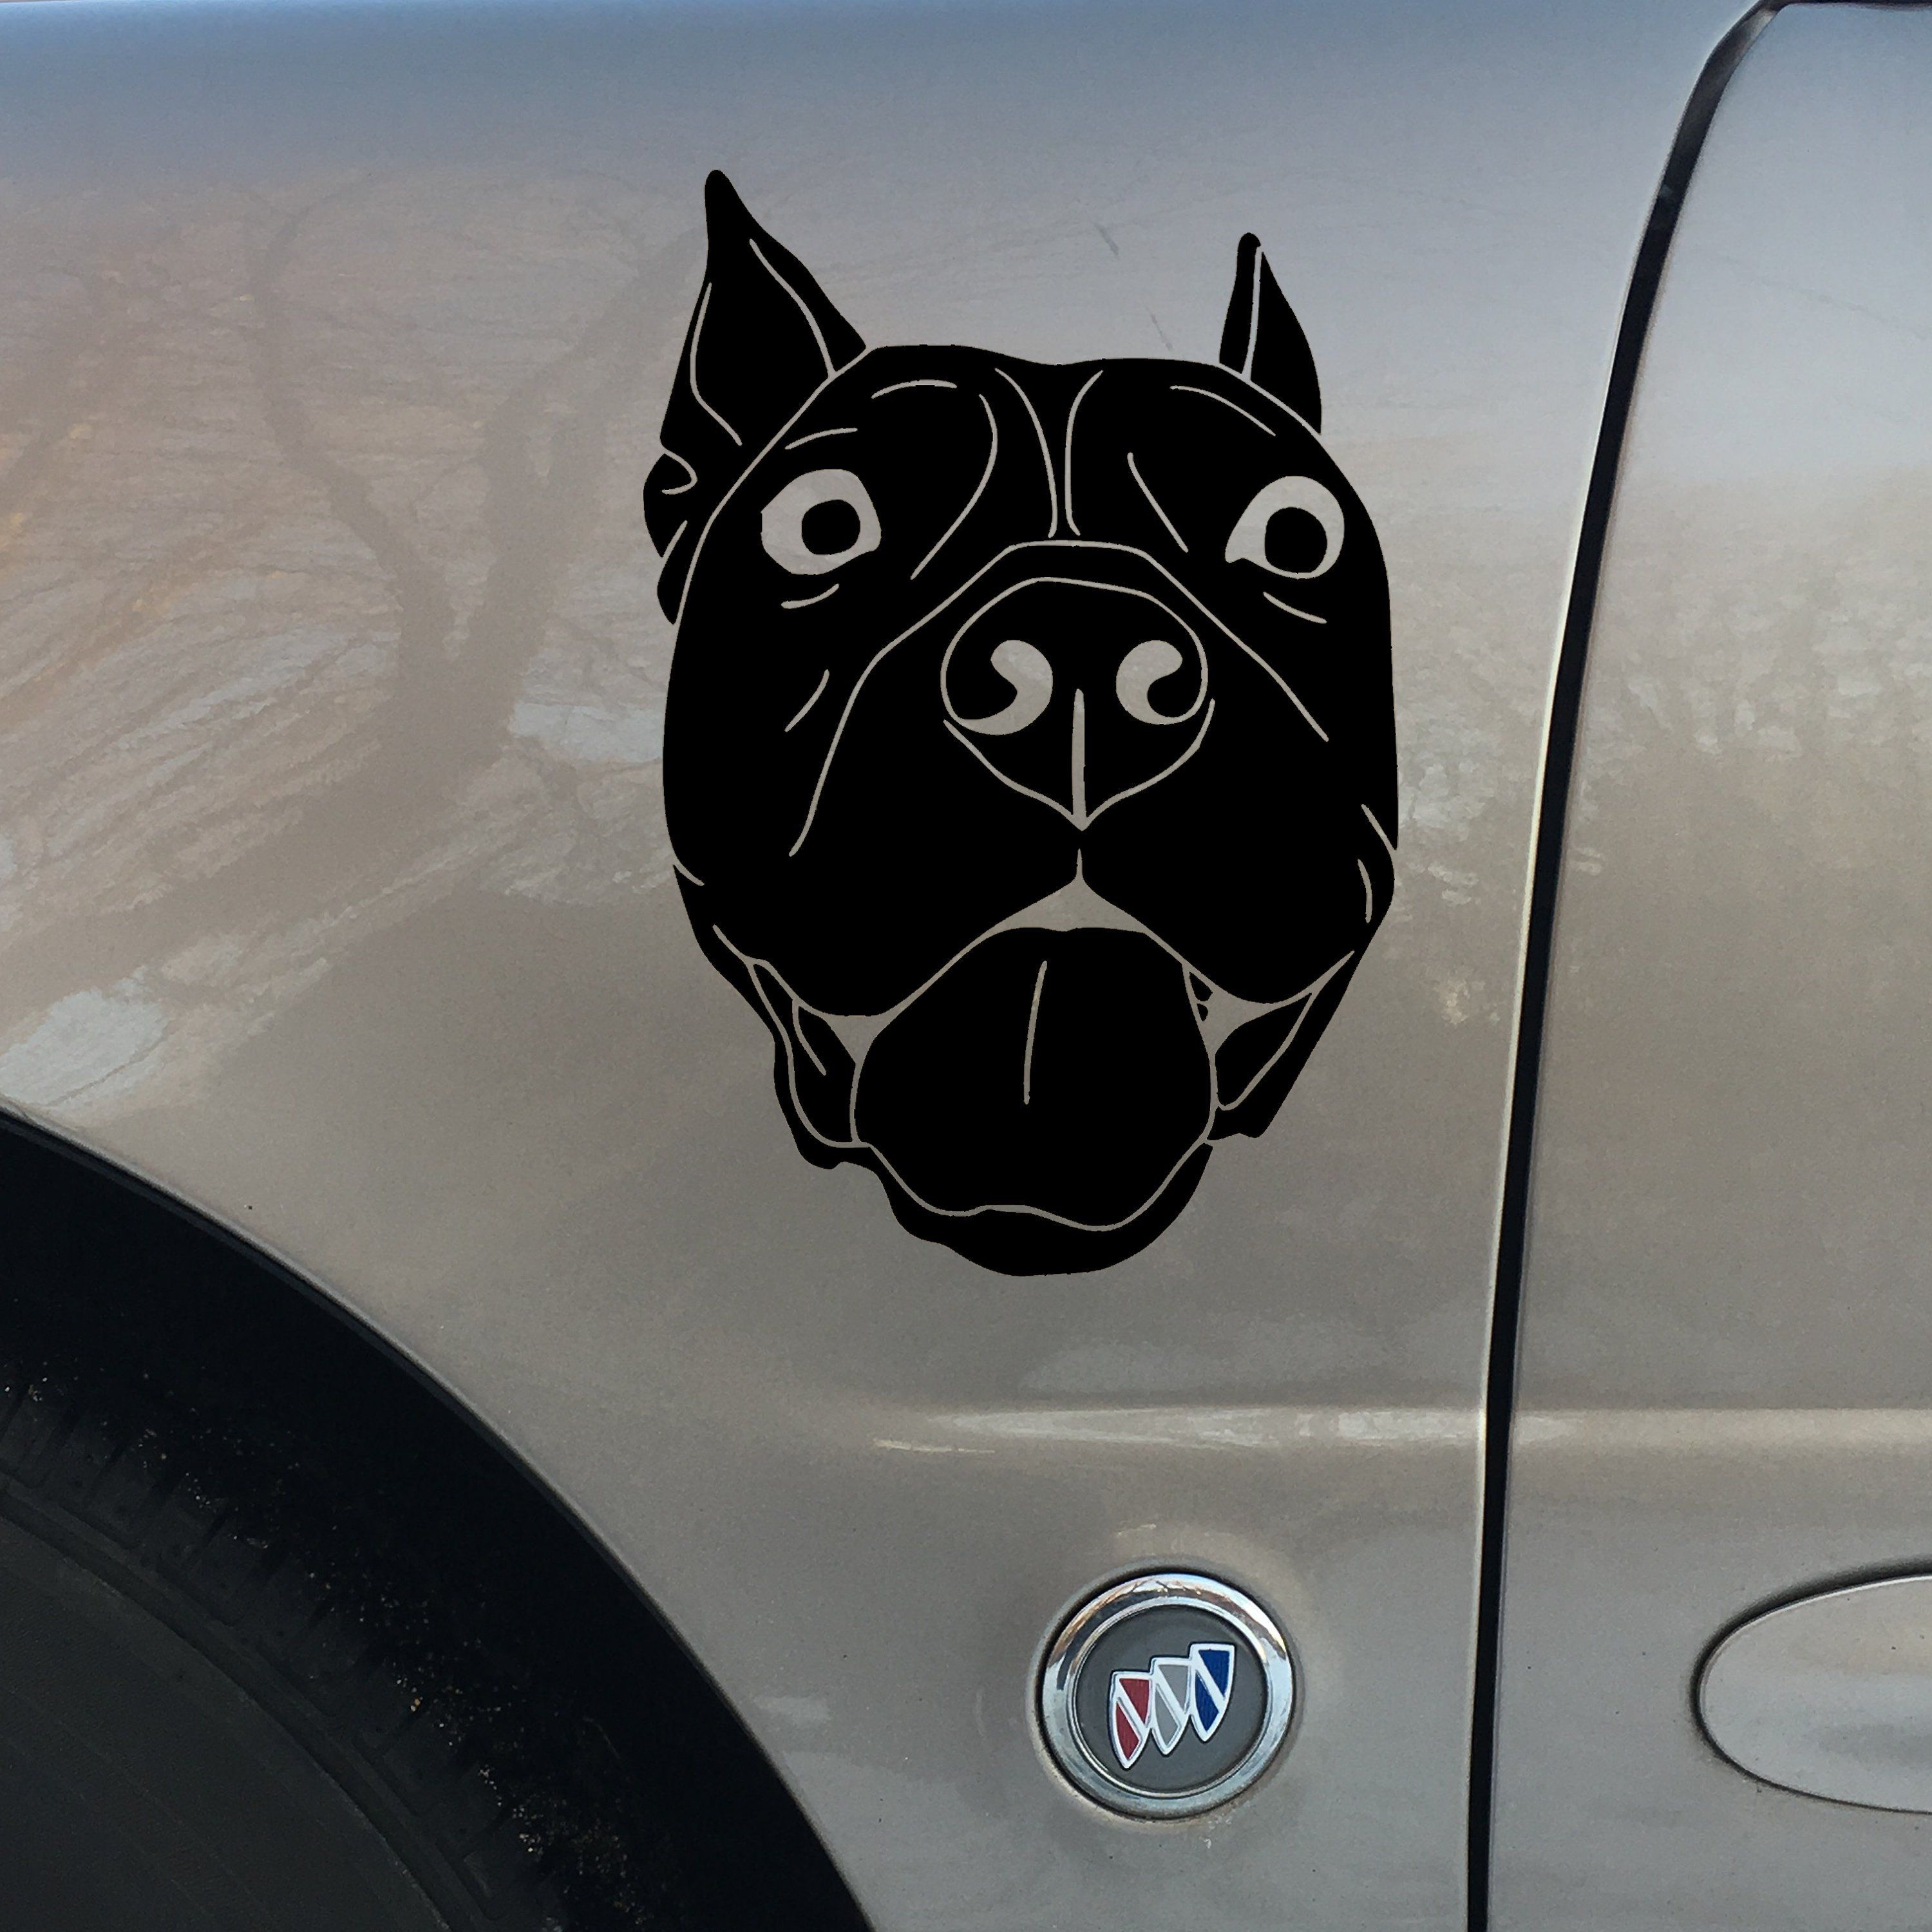 Dog Decals For Cars Dog Decals Dog Gifts Dog Car [ 3000 x 3000 Pixel ]